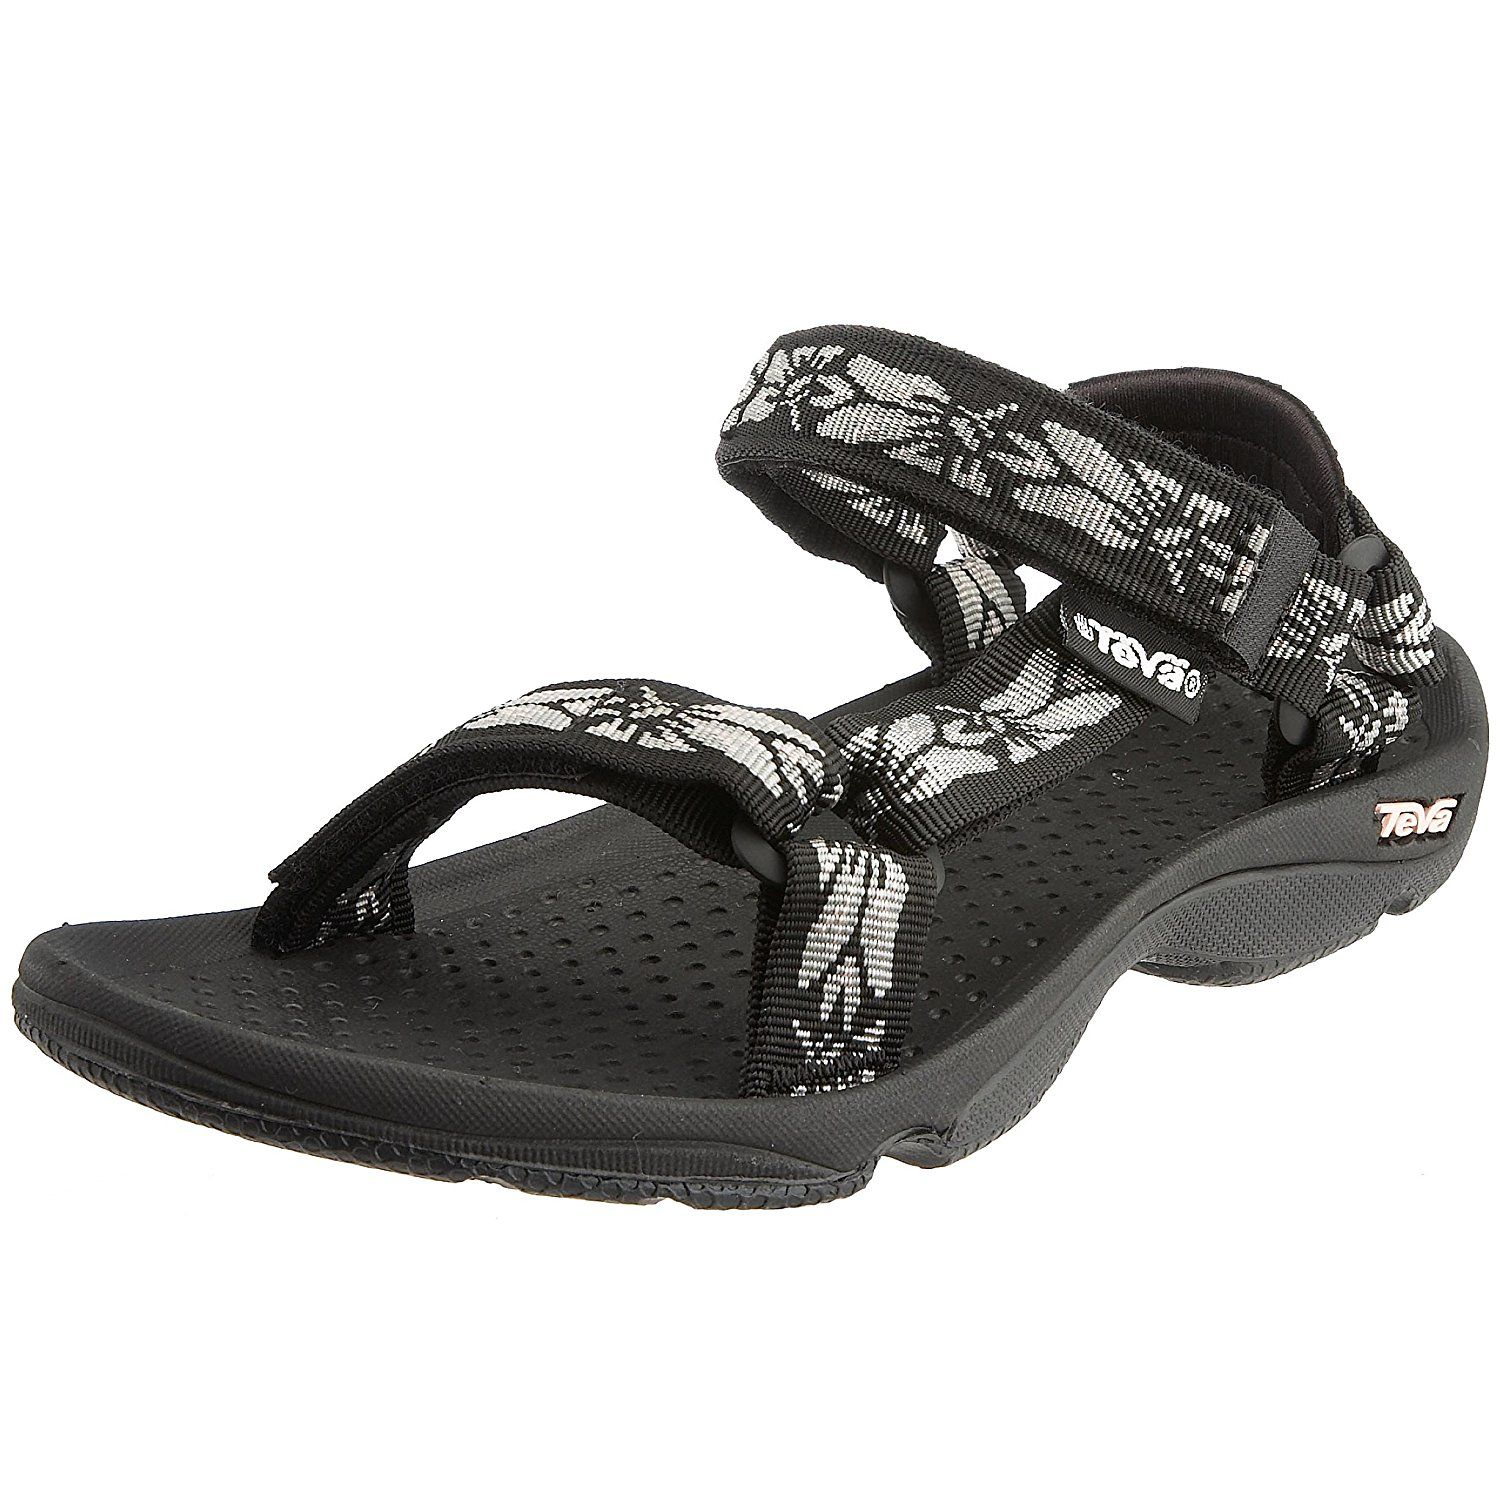 2b9f4554dcbd Teva Women s Hurricane 3 Outdoor Sandal     Remarkable product available  now.   Teva sandals